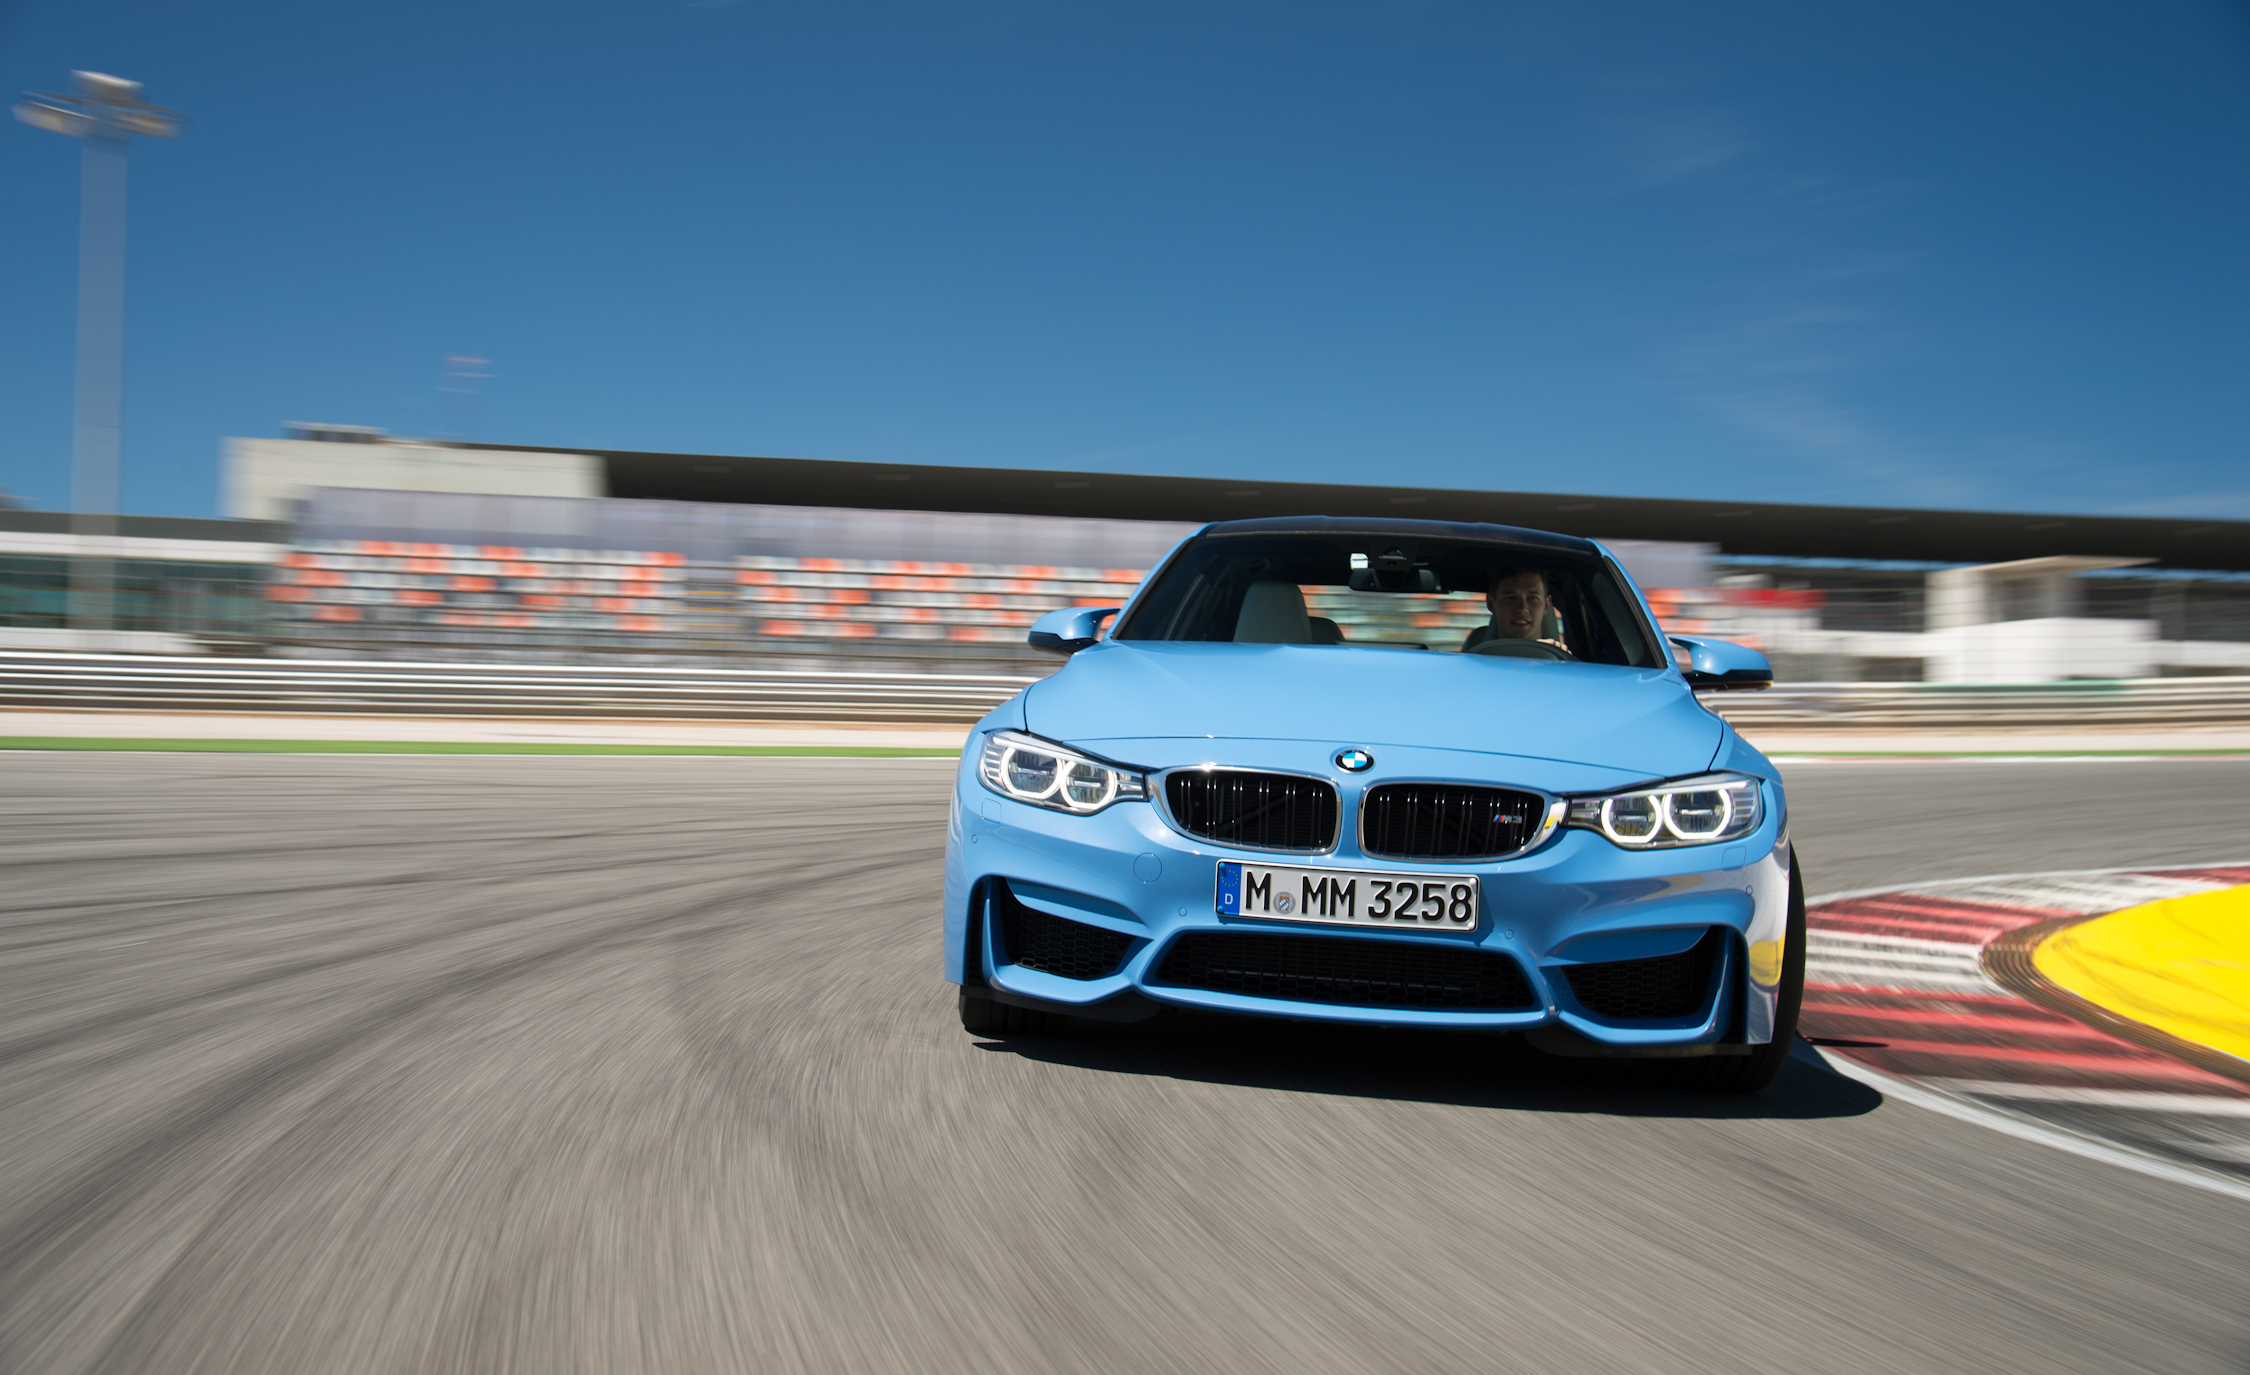 2015 BMW M3 Performance Front View